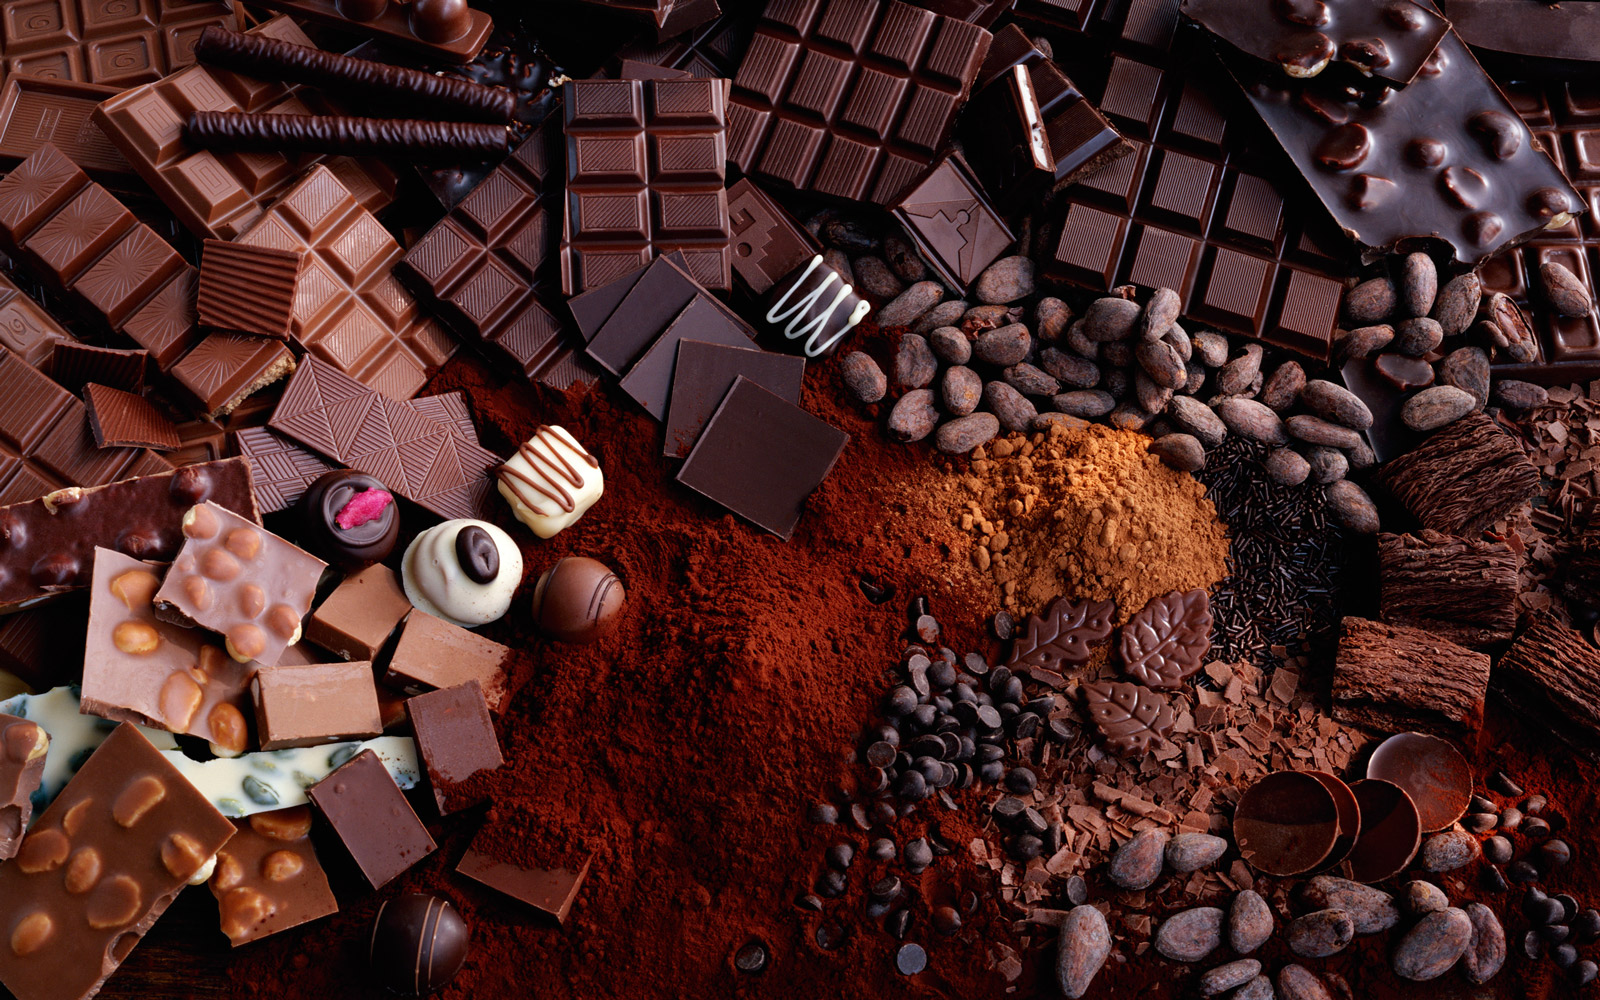 Scientists Expect Cacao Plants to Go Extinct by 2050